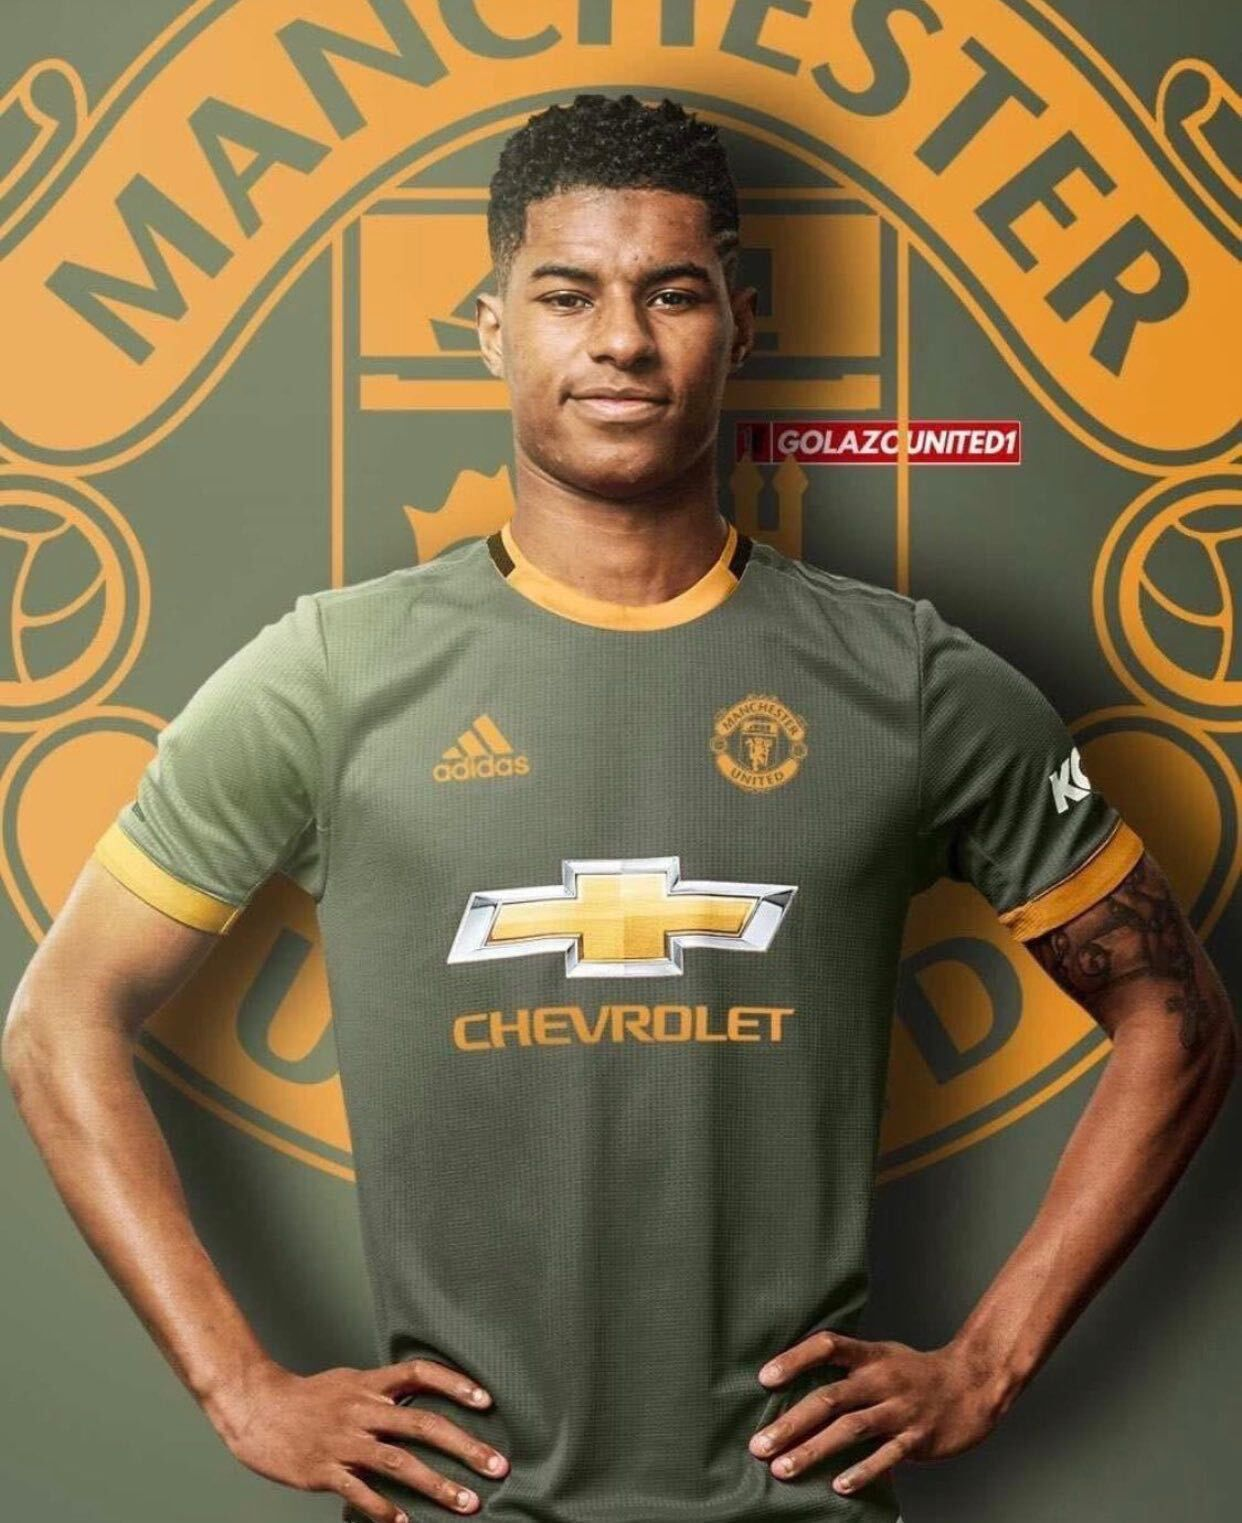 Manchester United 2020 21 Home And Away Kits Apparently Leaked The Busby Babe